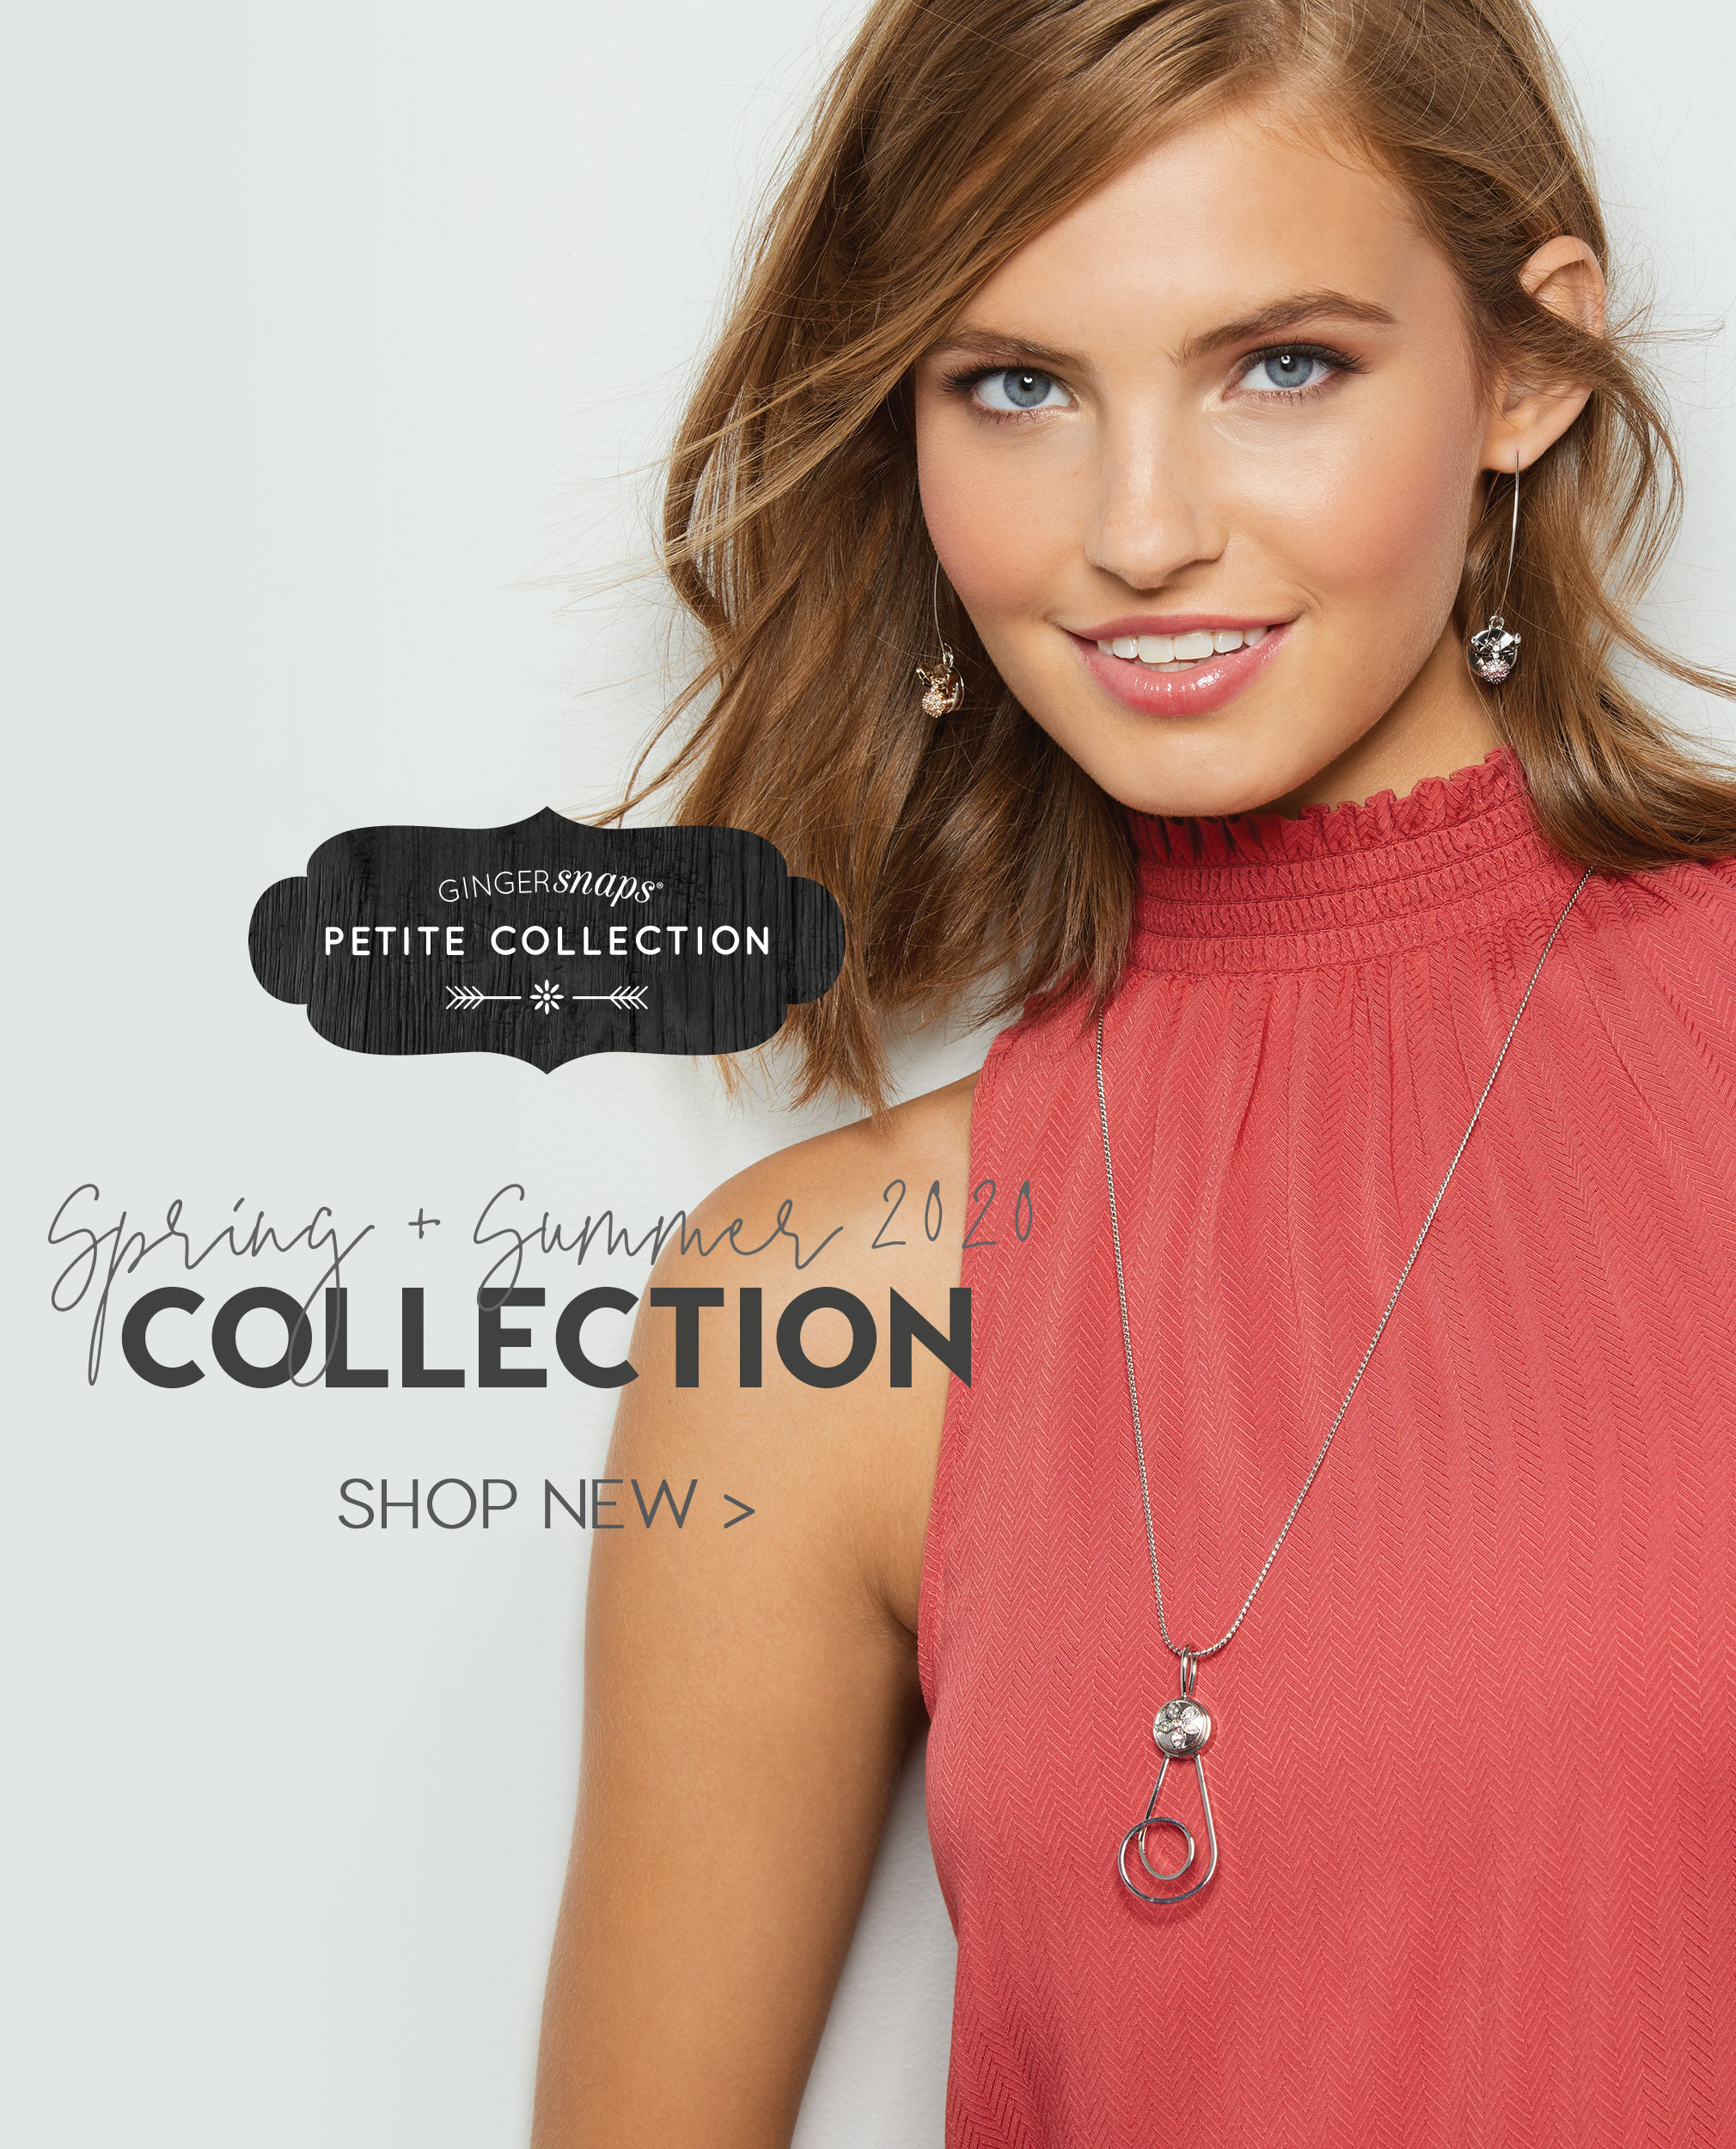 Ginger Snaps Petites New Collection